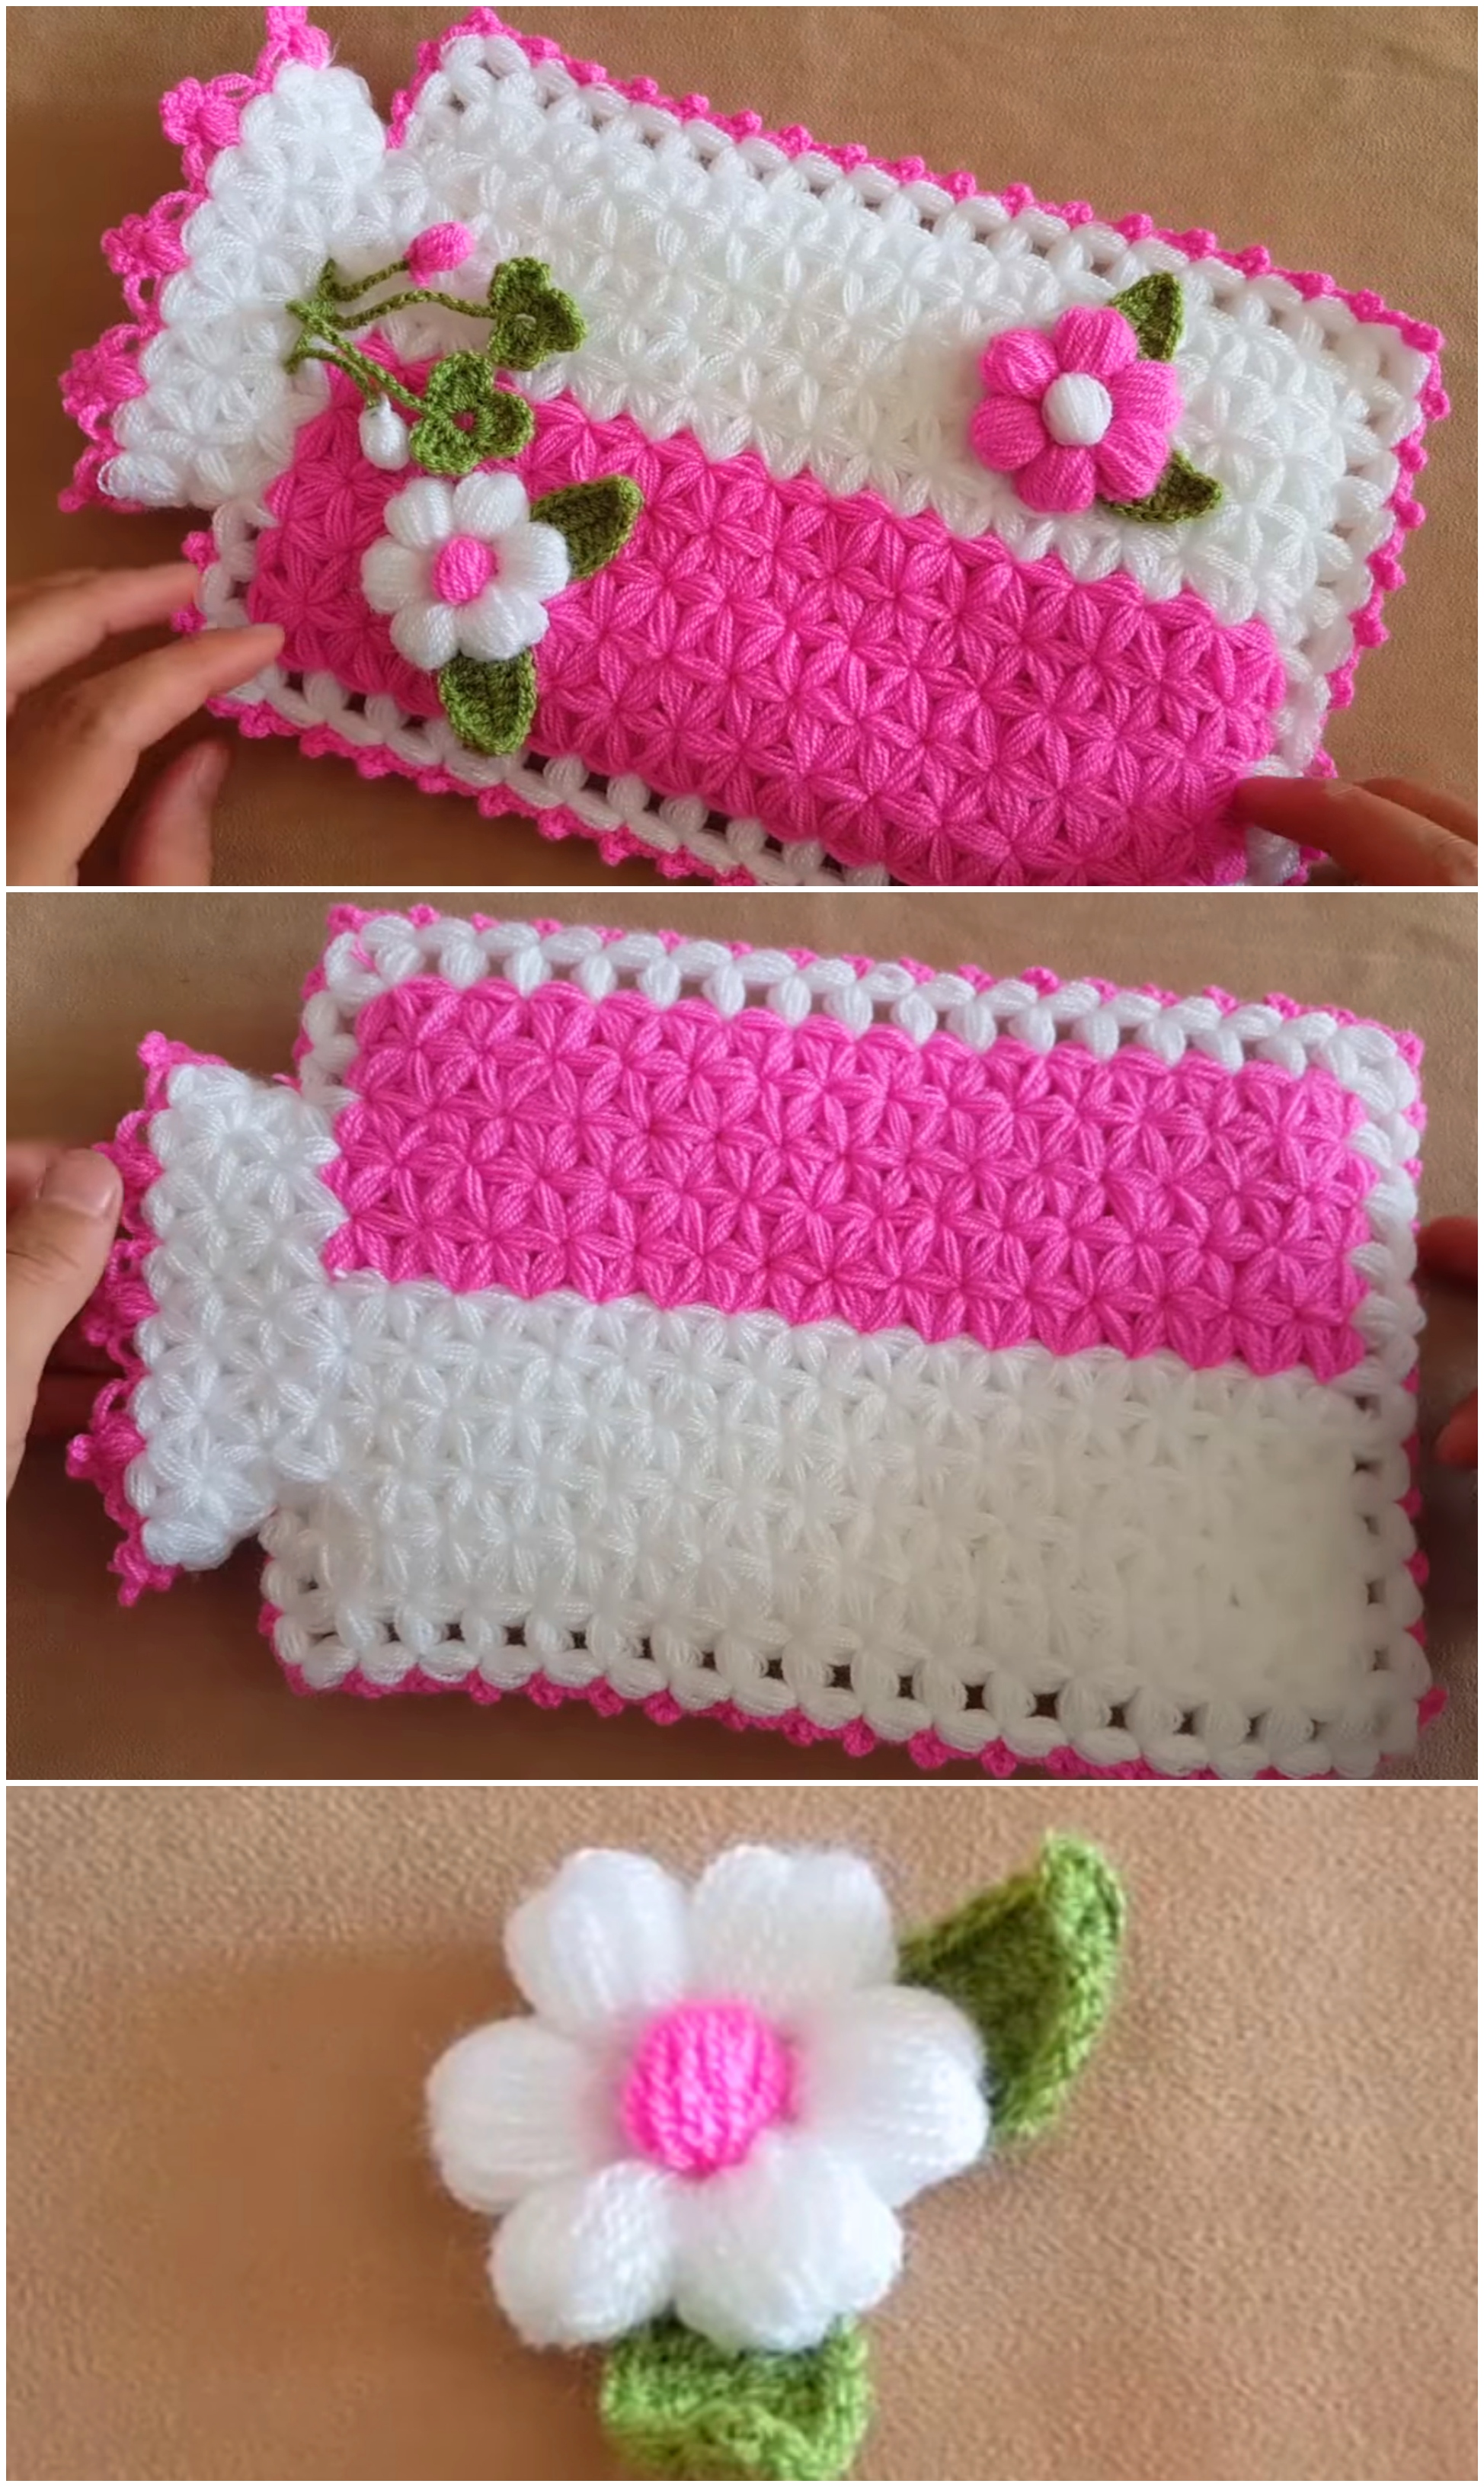 Crochet Hot Water Bottle Cover With Flowers